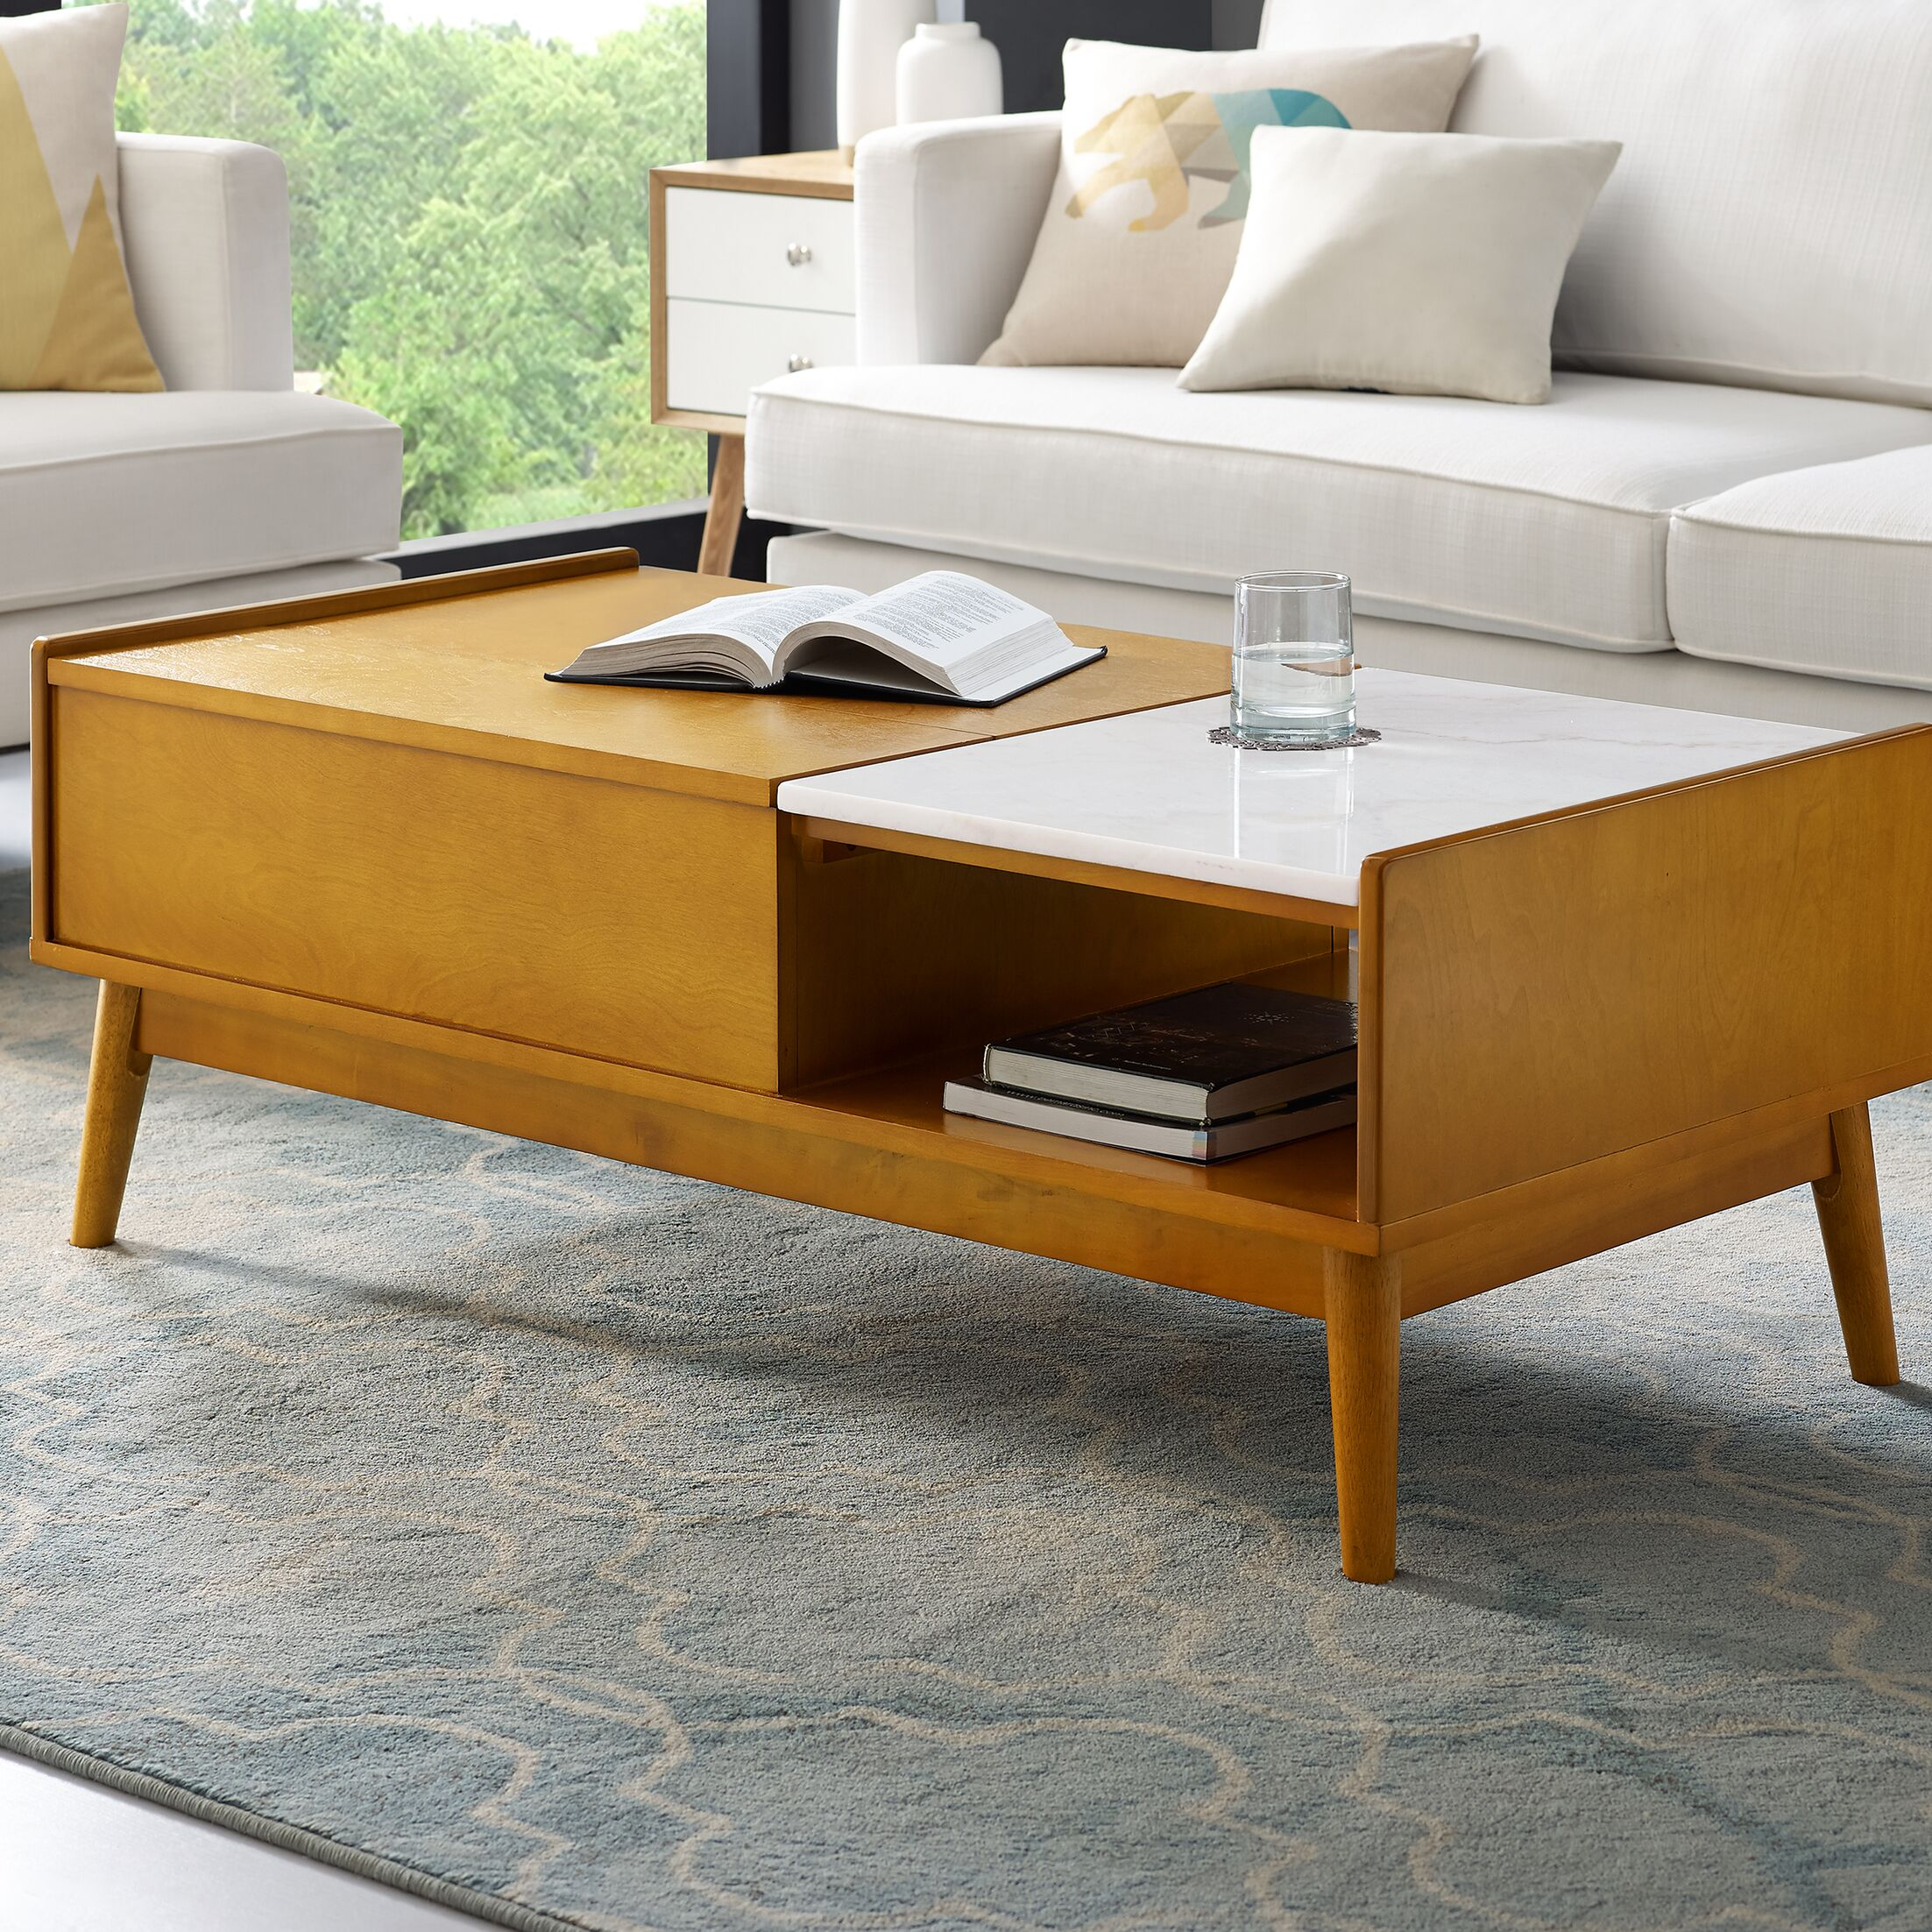 Easmor Coffee Table with Storage